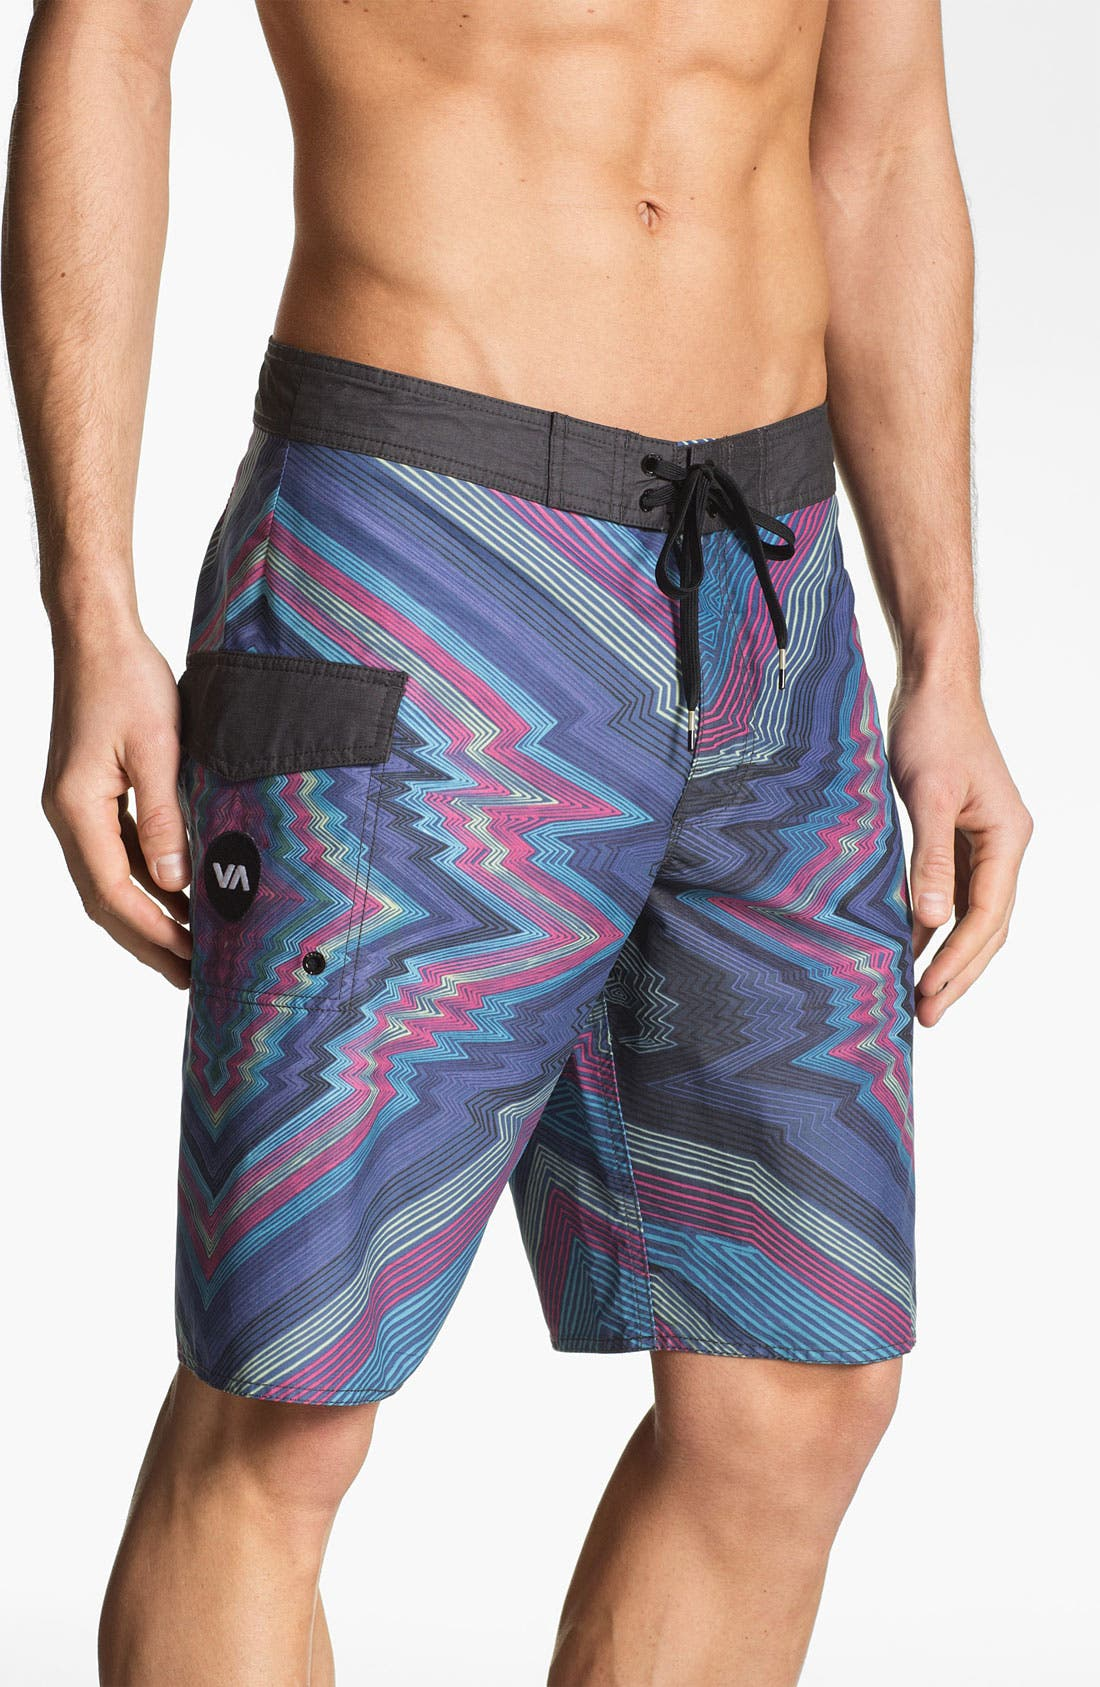 Alternate Image 1 Selected - RVCA 'Kelsey Brookes' Board Shorts